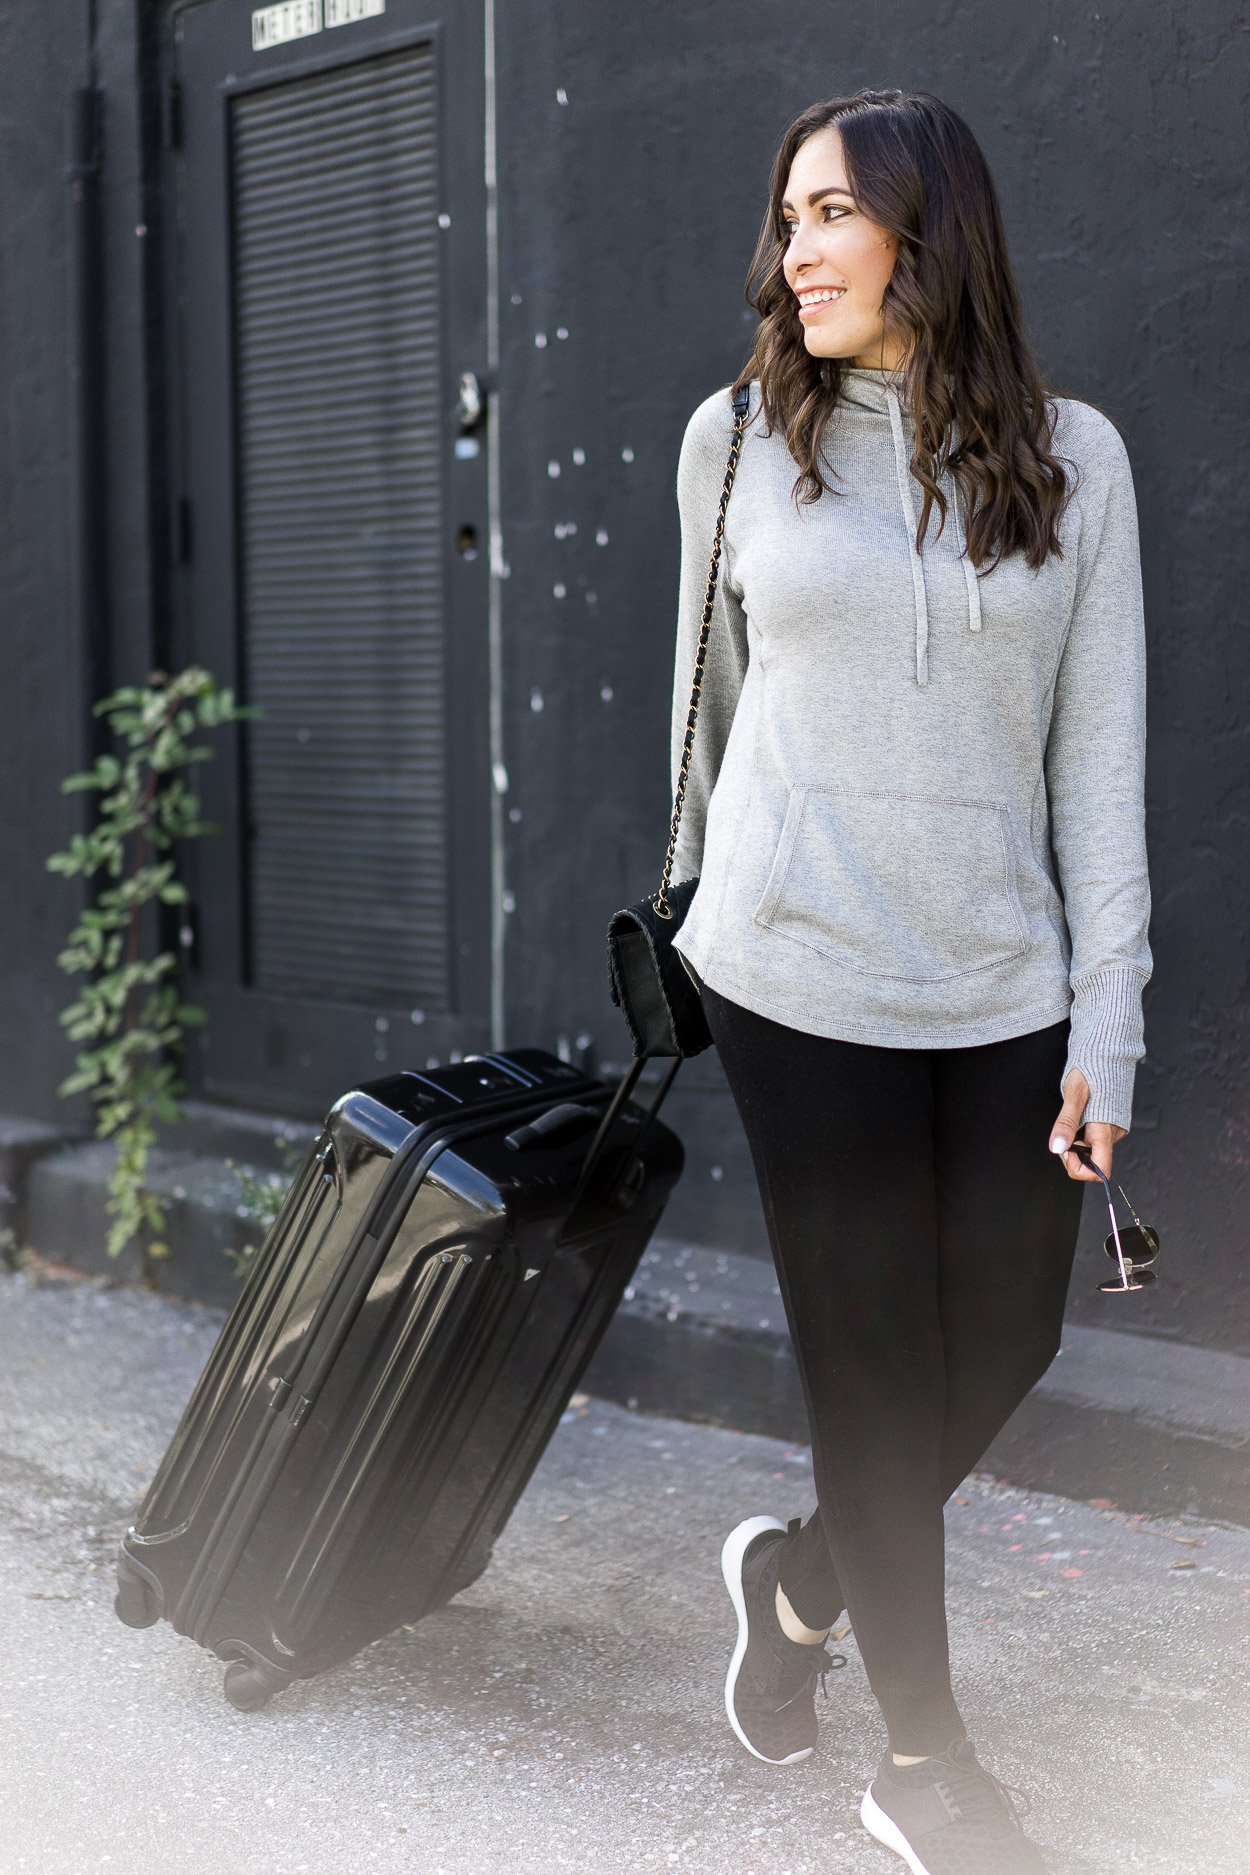 Essential travel style with Leimere cashmere joggers and cashmere hoodie by A Glam Lifestyle blogger Amanda